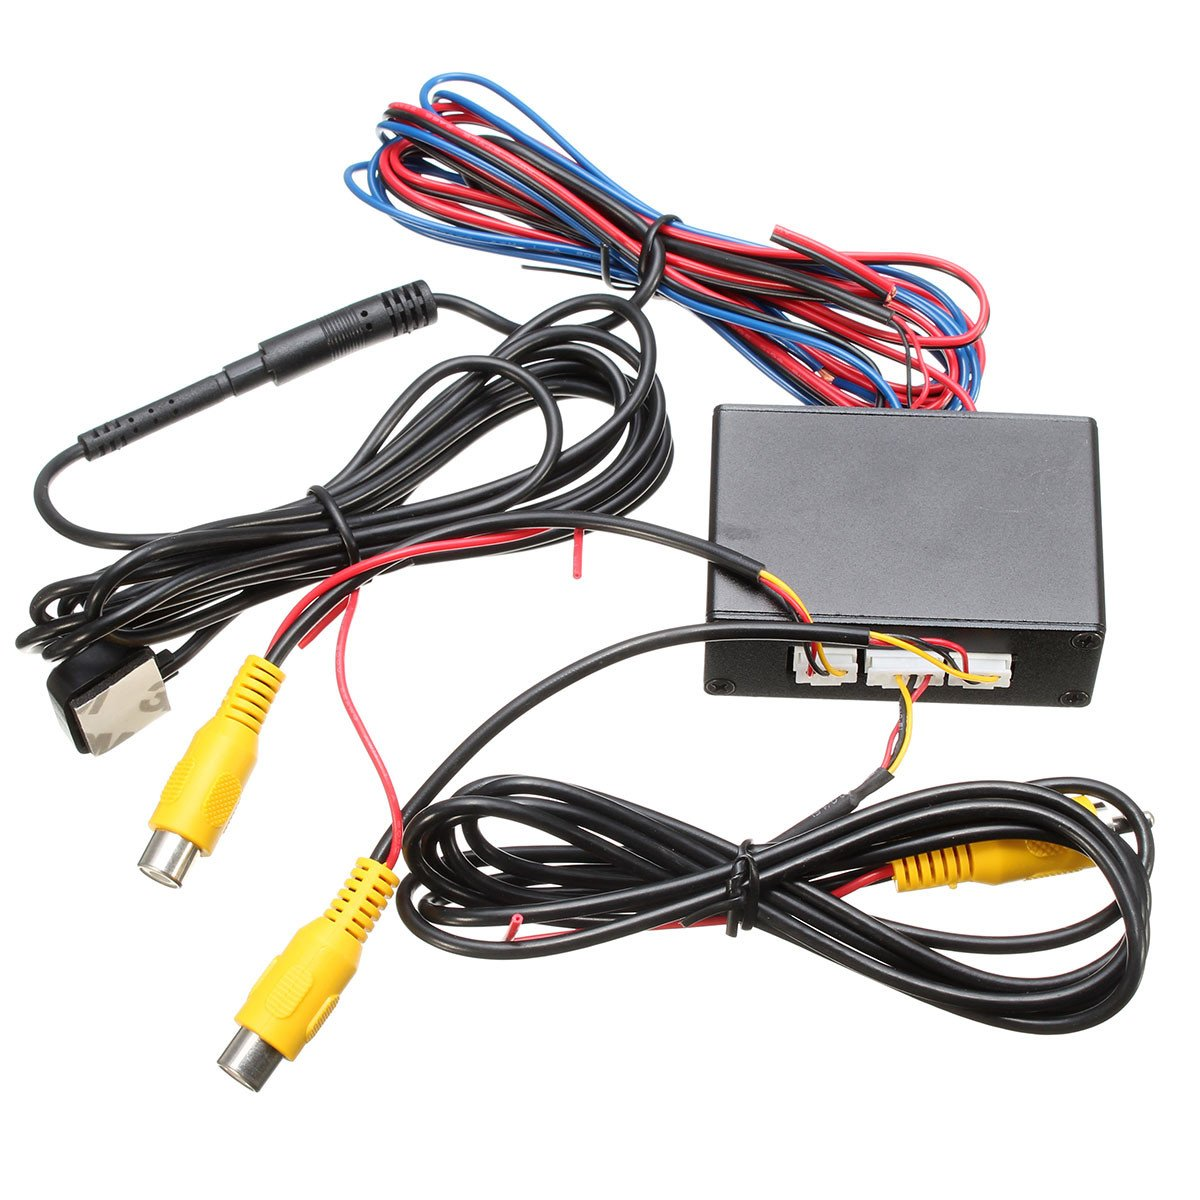 Intelligent control car camera video switch(car video automatic switch) connect front or side rear cameras